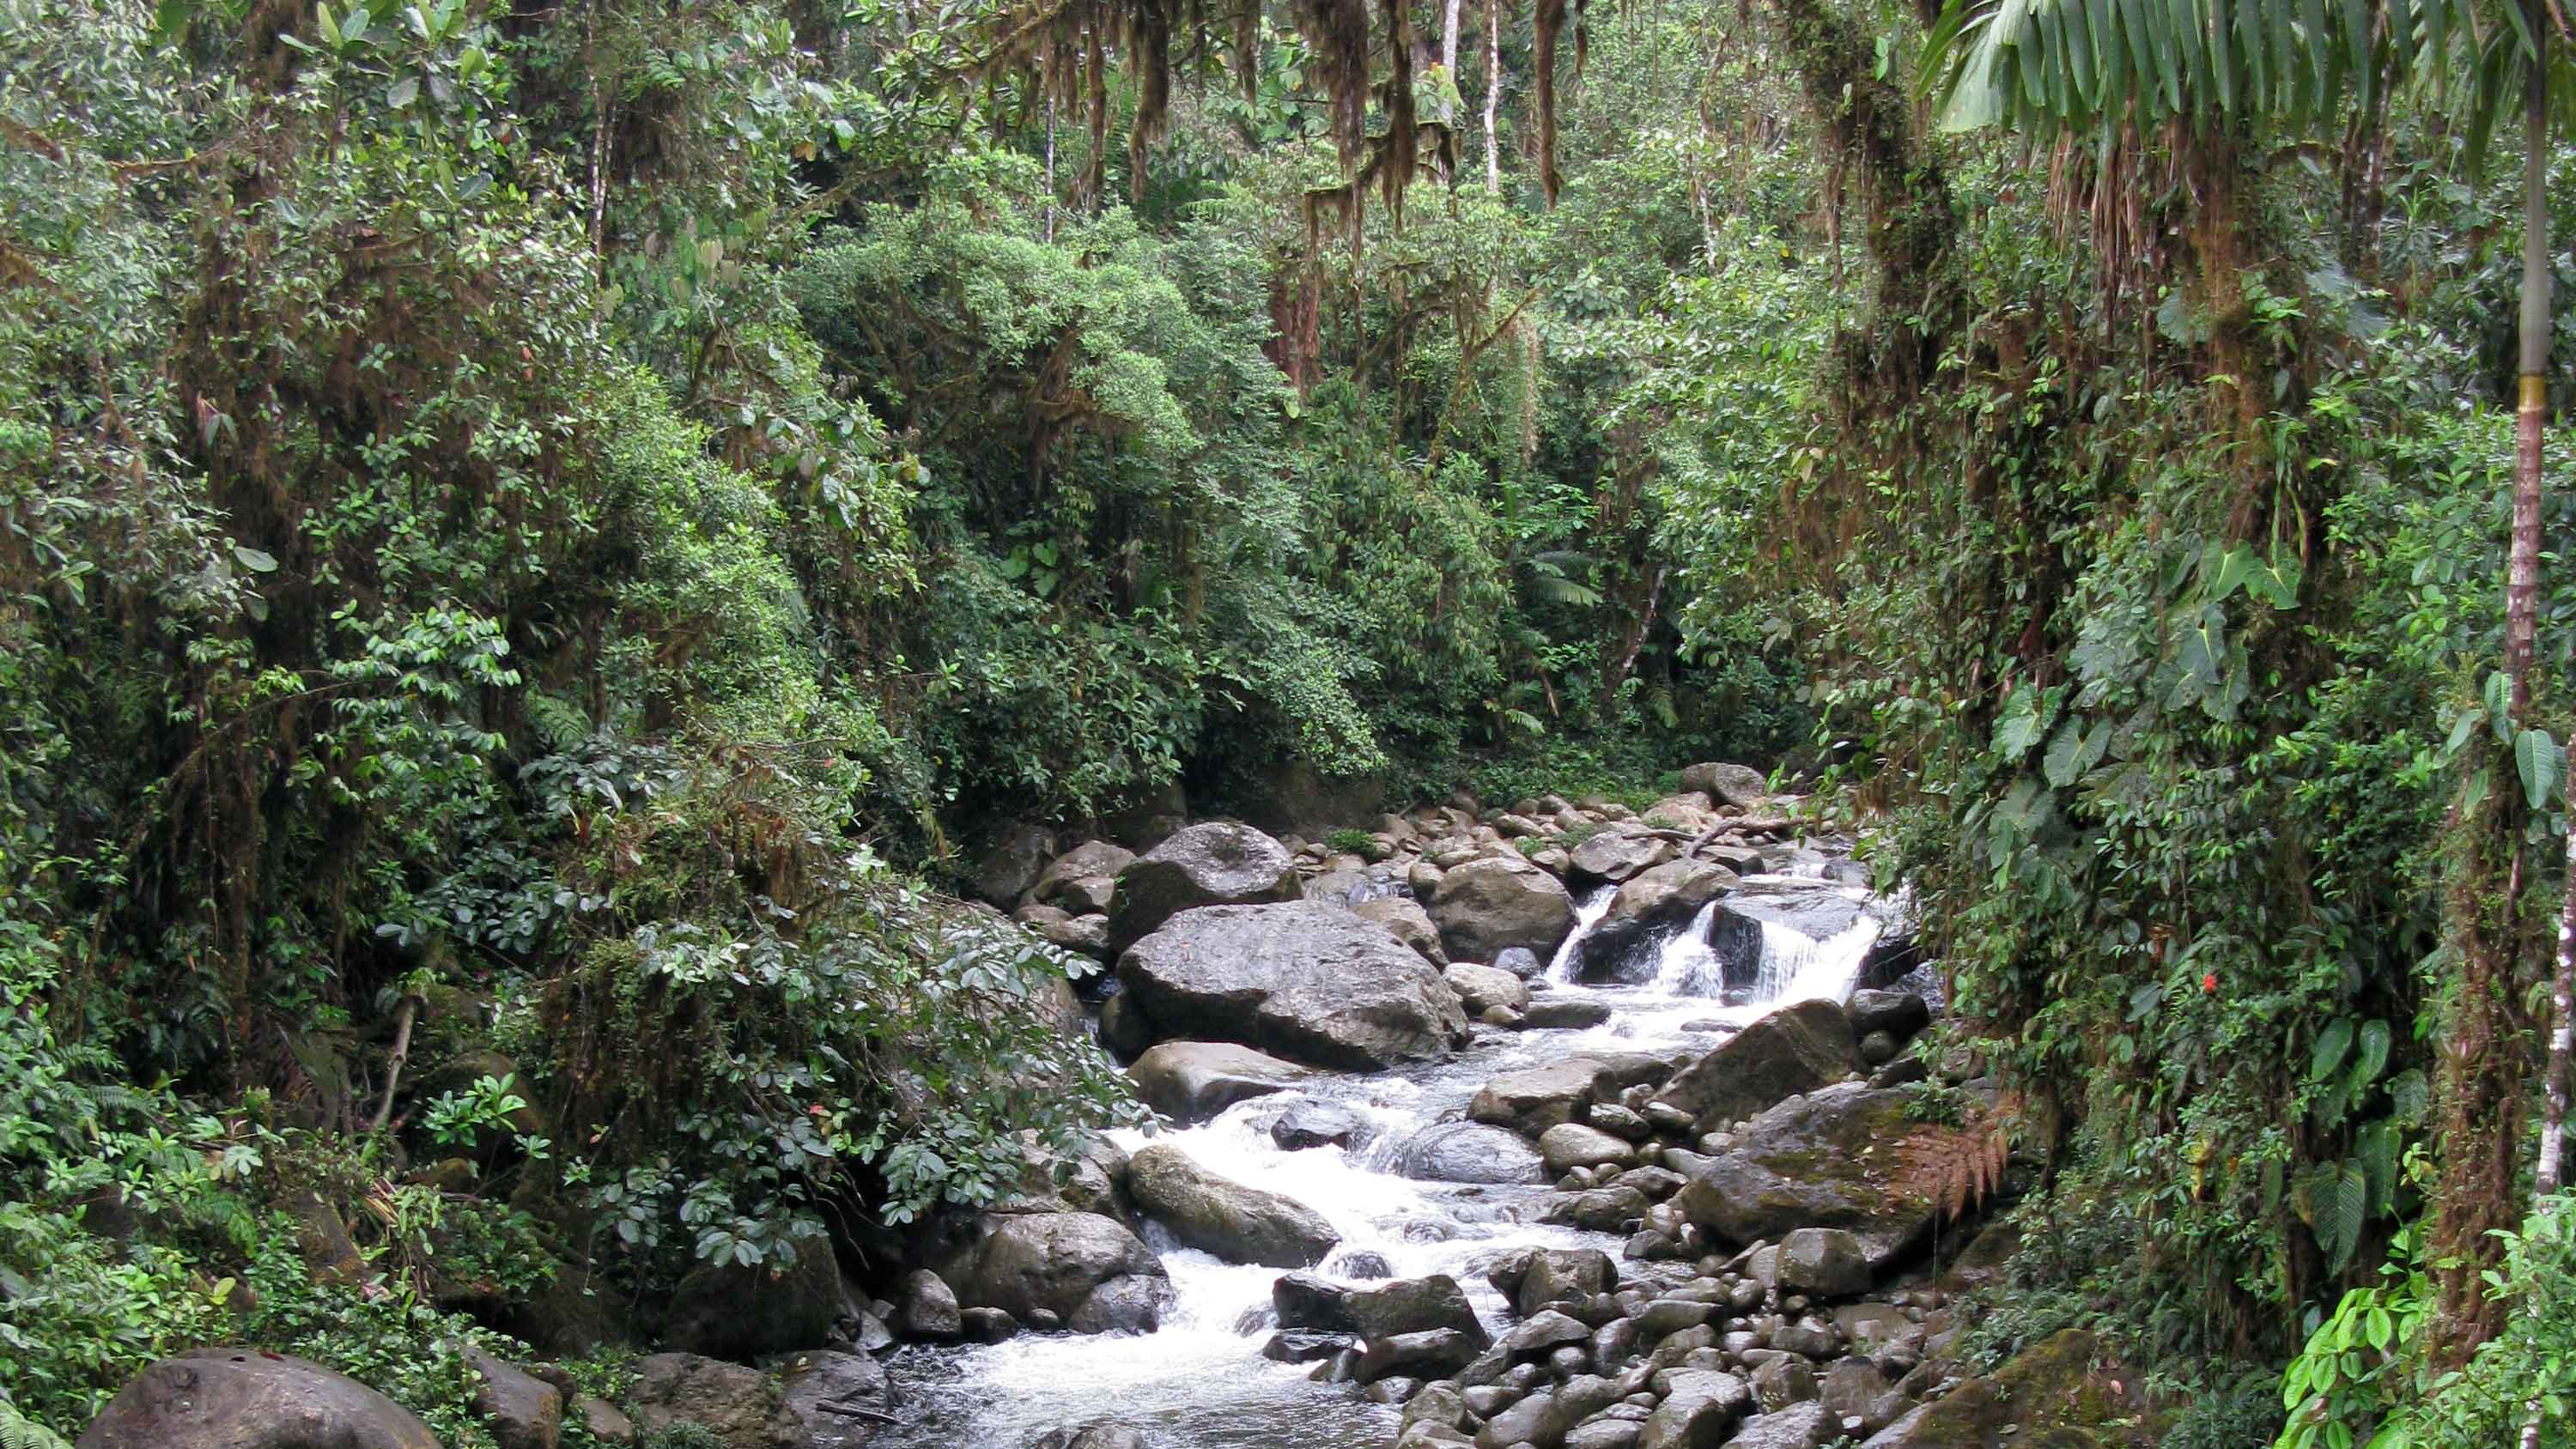 Image showing Rainforest at the Río Ñambí Nature Reserve in Nariño. Kew's plan for Colombia includes working in this department in 2018